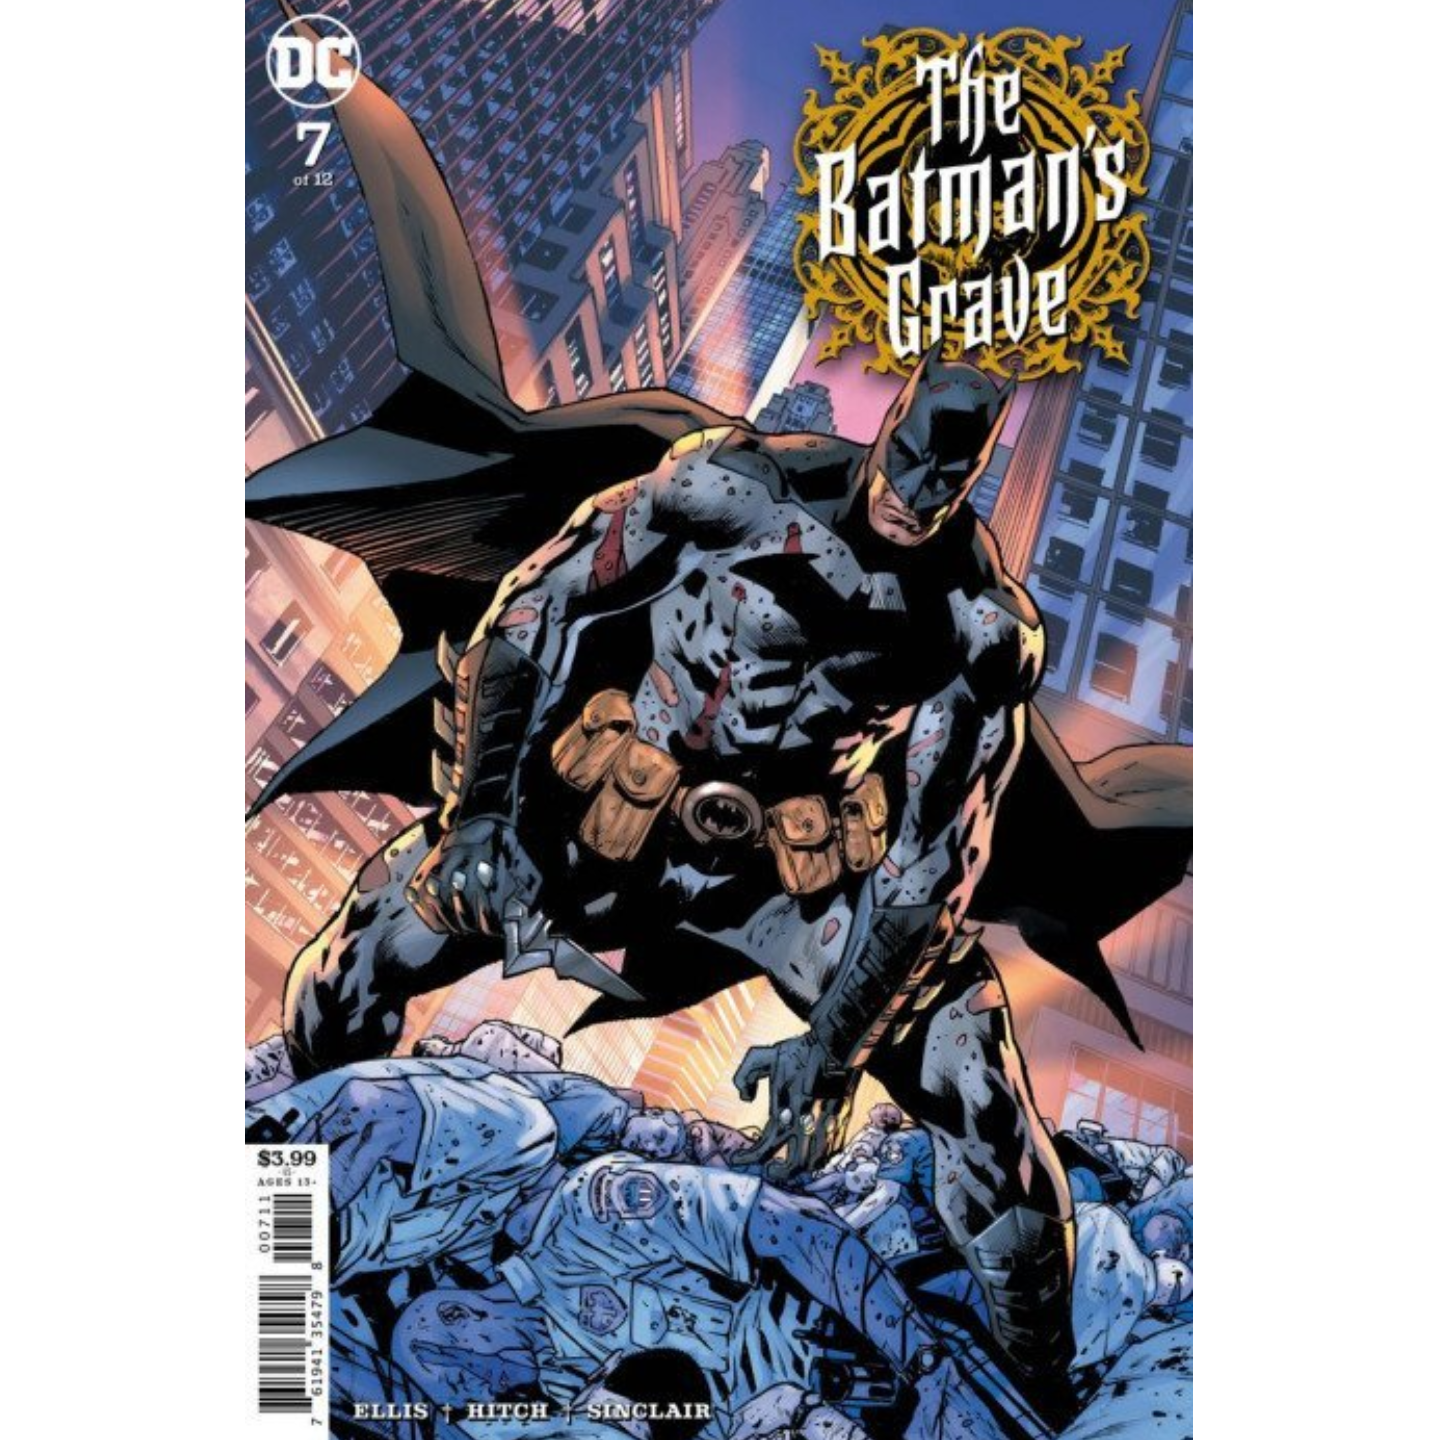 THE BATMAN'S GRAVE #7